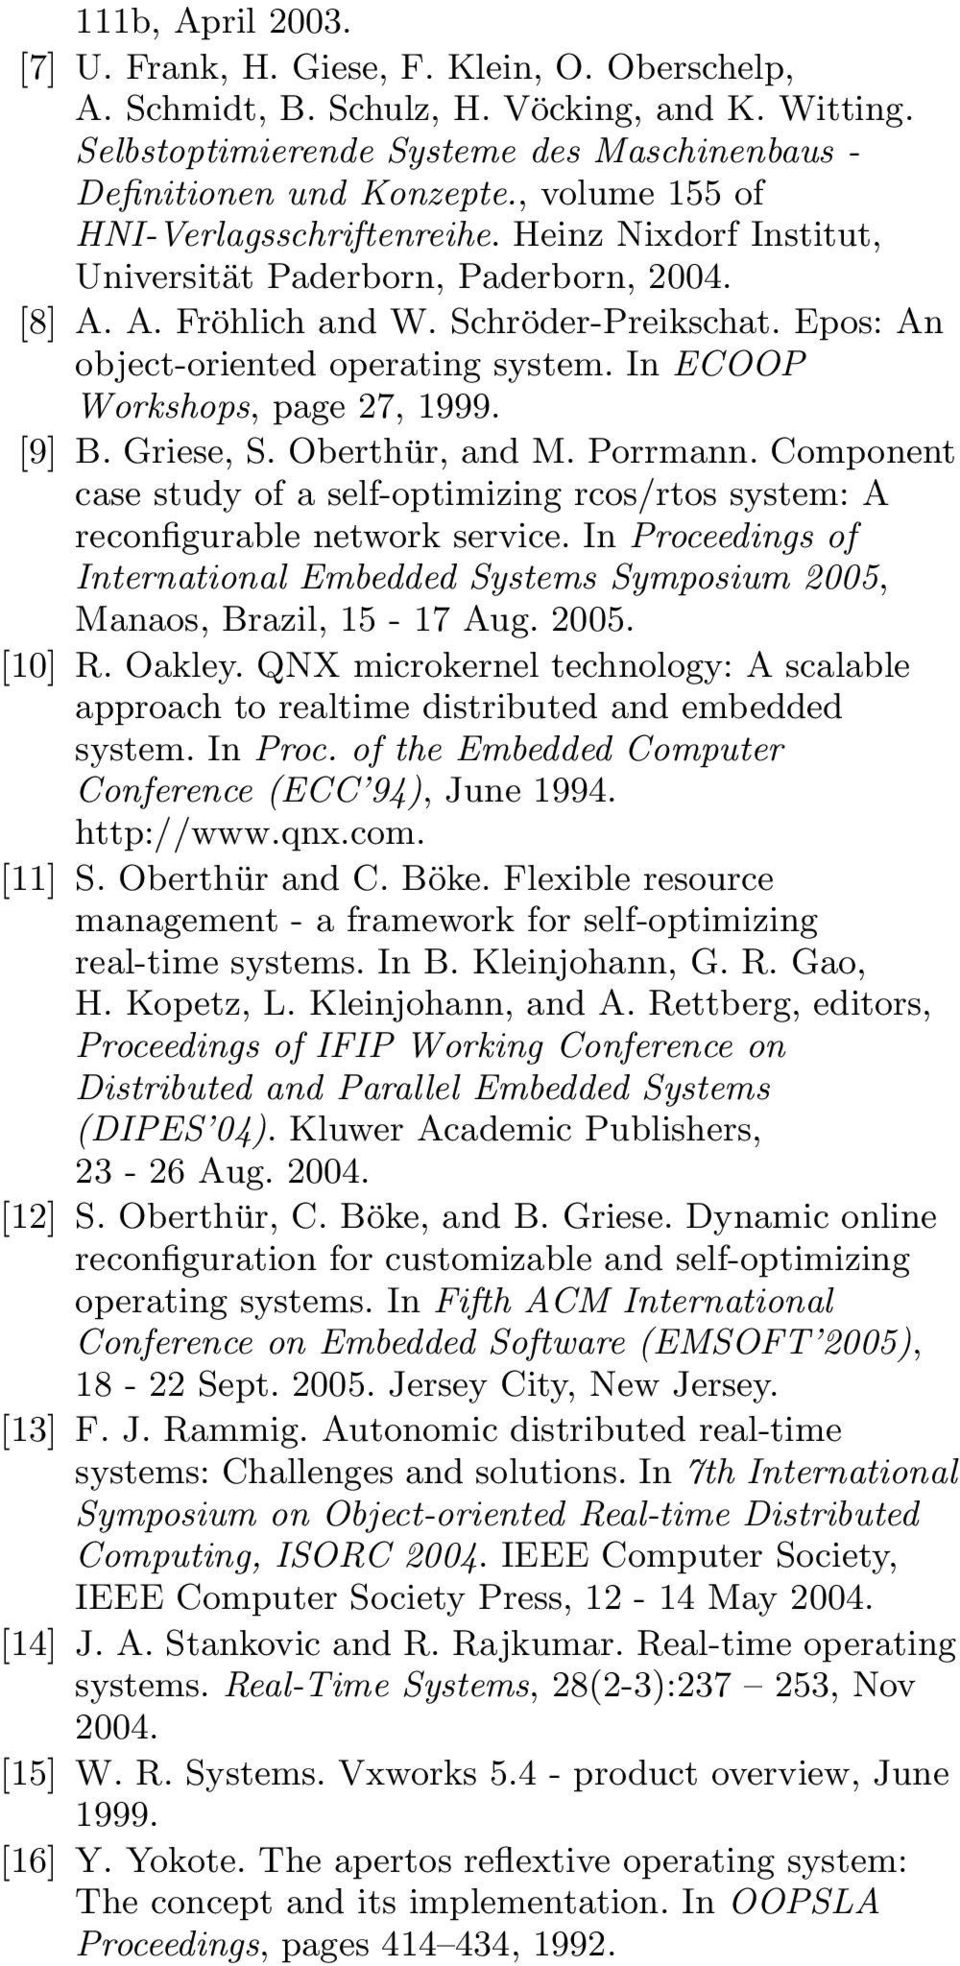 Griese, S. Oberthür, and M. Porrmann. Component case study of a self-optimizing rcos/rtos system: A reconfigurable network service.